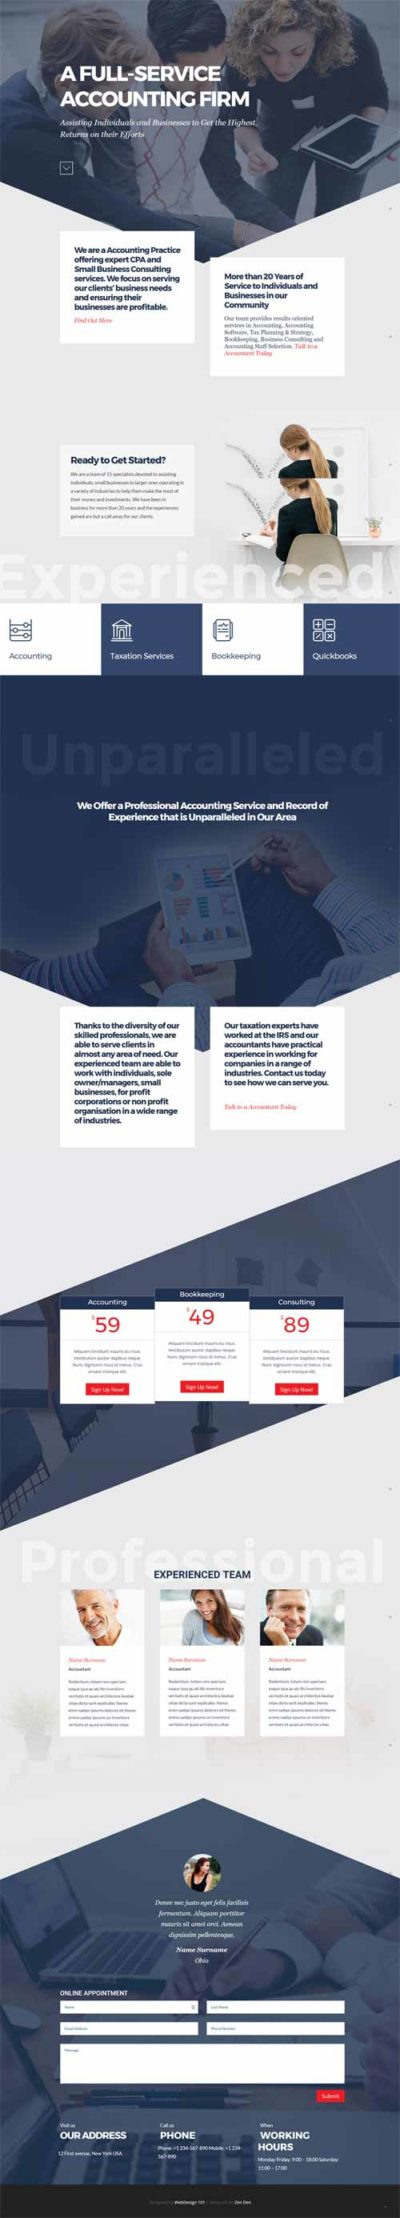 divi layout for accountantat